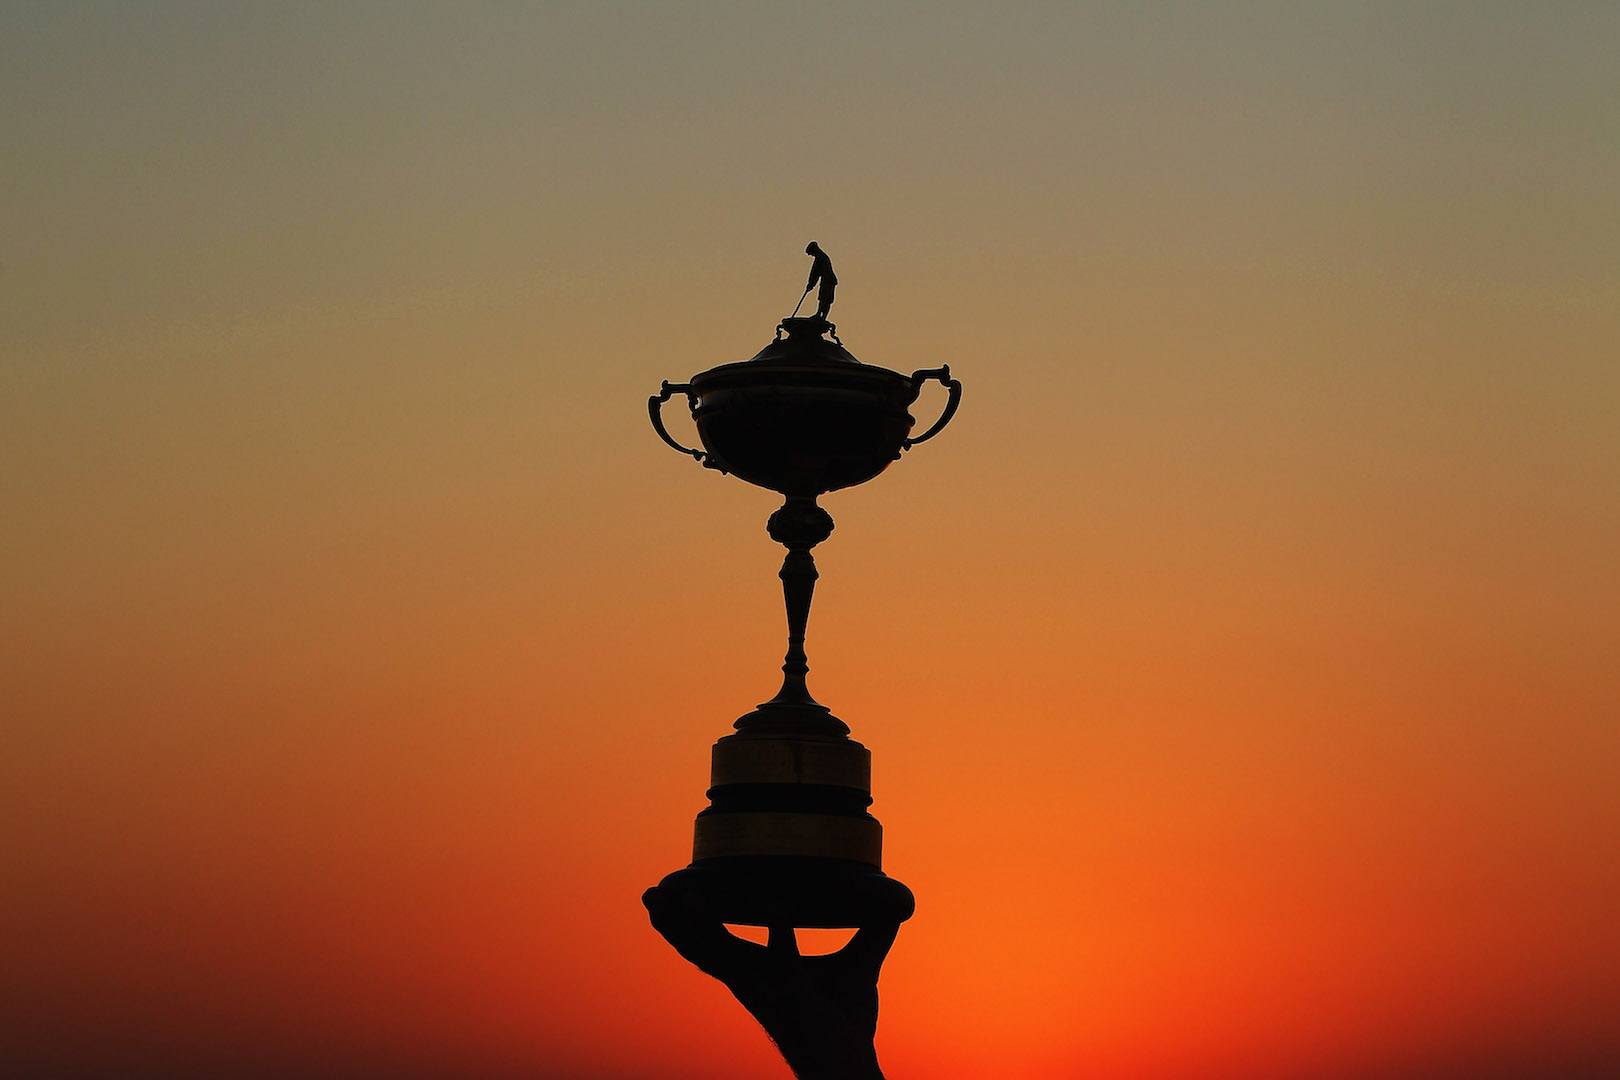 Ryder Cup goes on US Tour